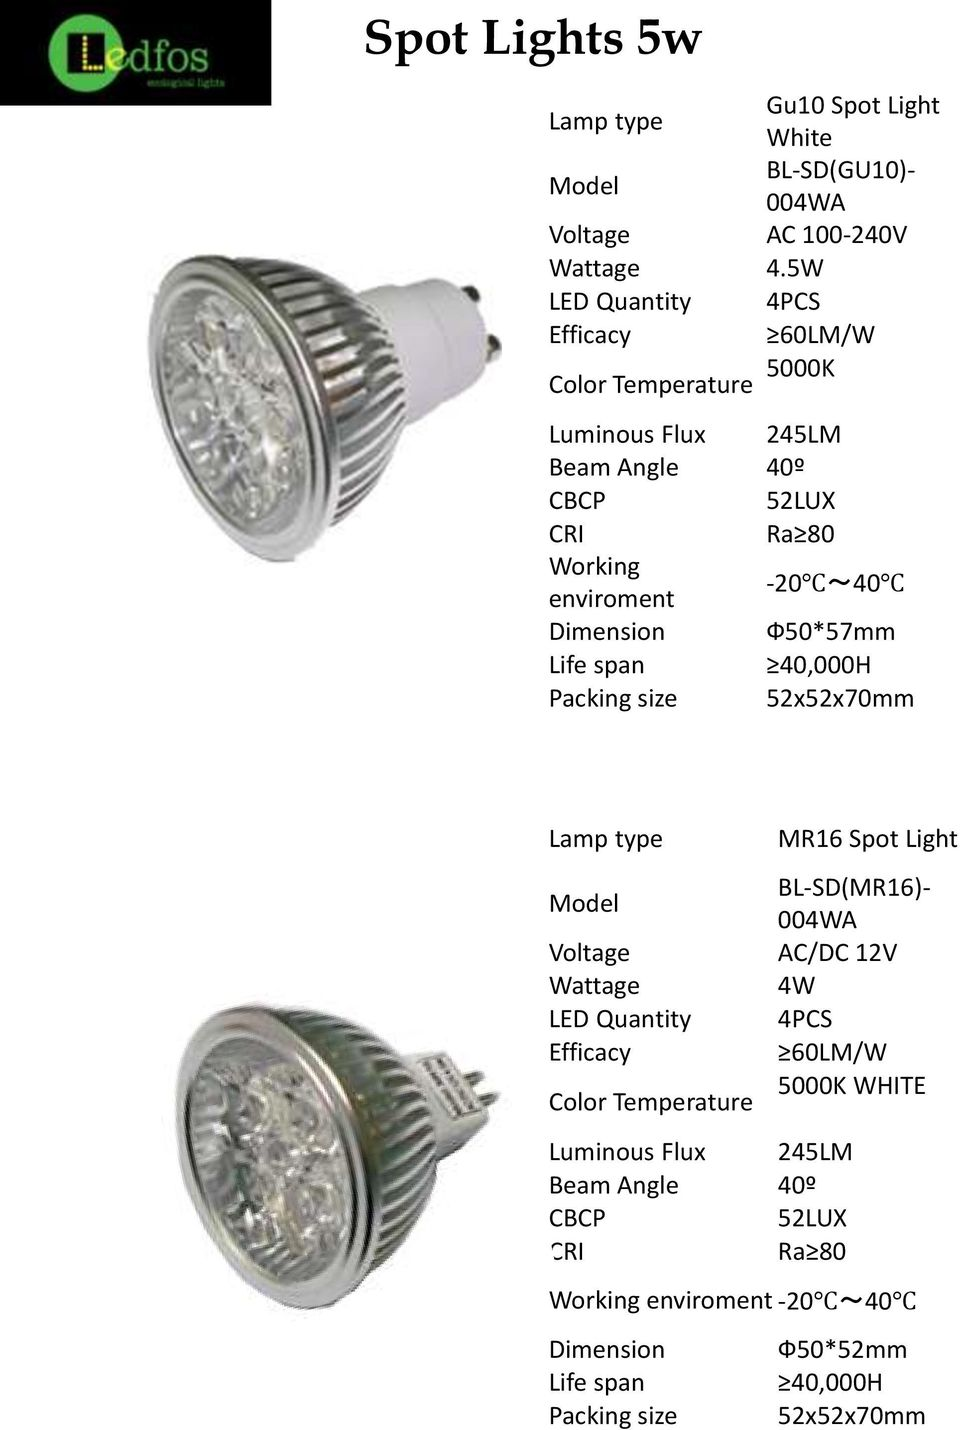 Dimension Ф50*57mm Life span 40,000H Packing size 52x52x70mm Lamp type MR16 Spot Light Model Voltage Wattage LED Quantity Efficacy Color Temperature